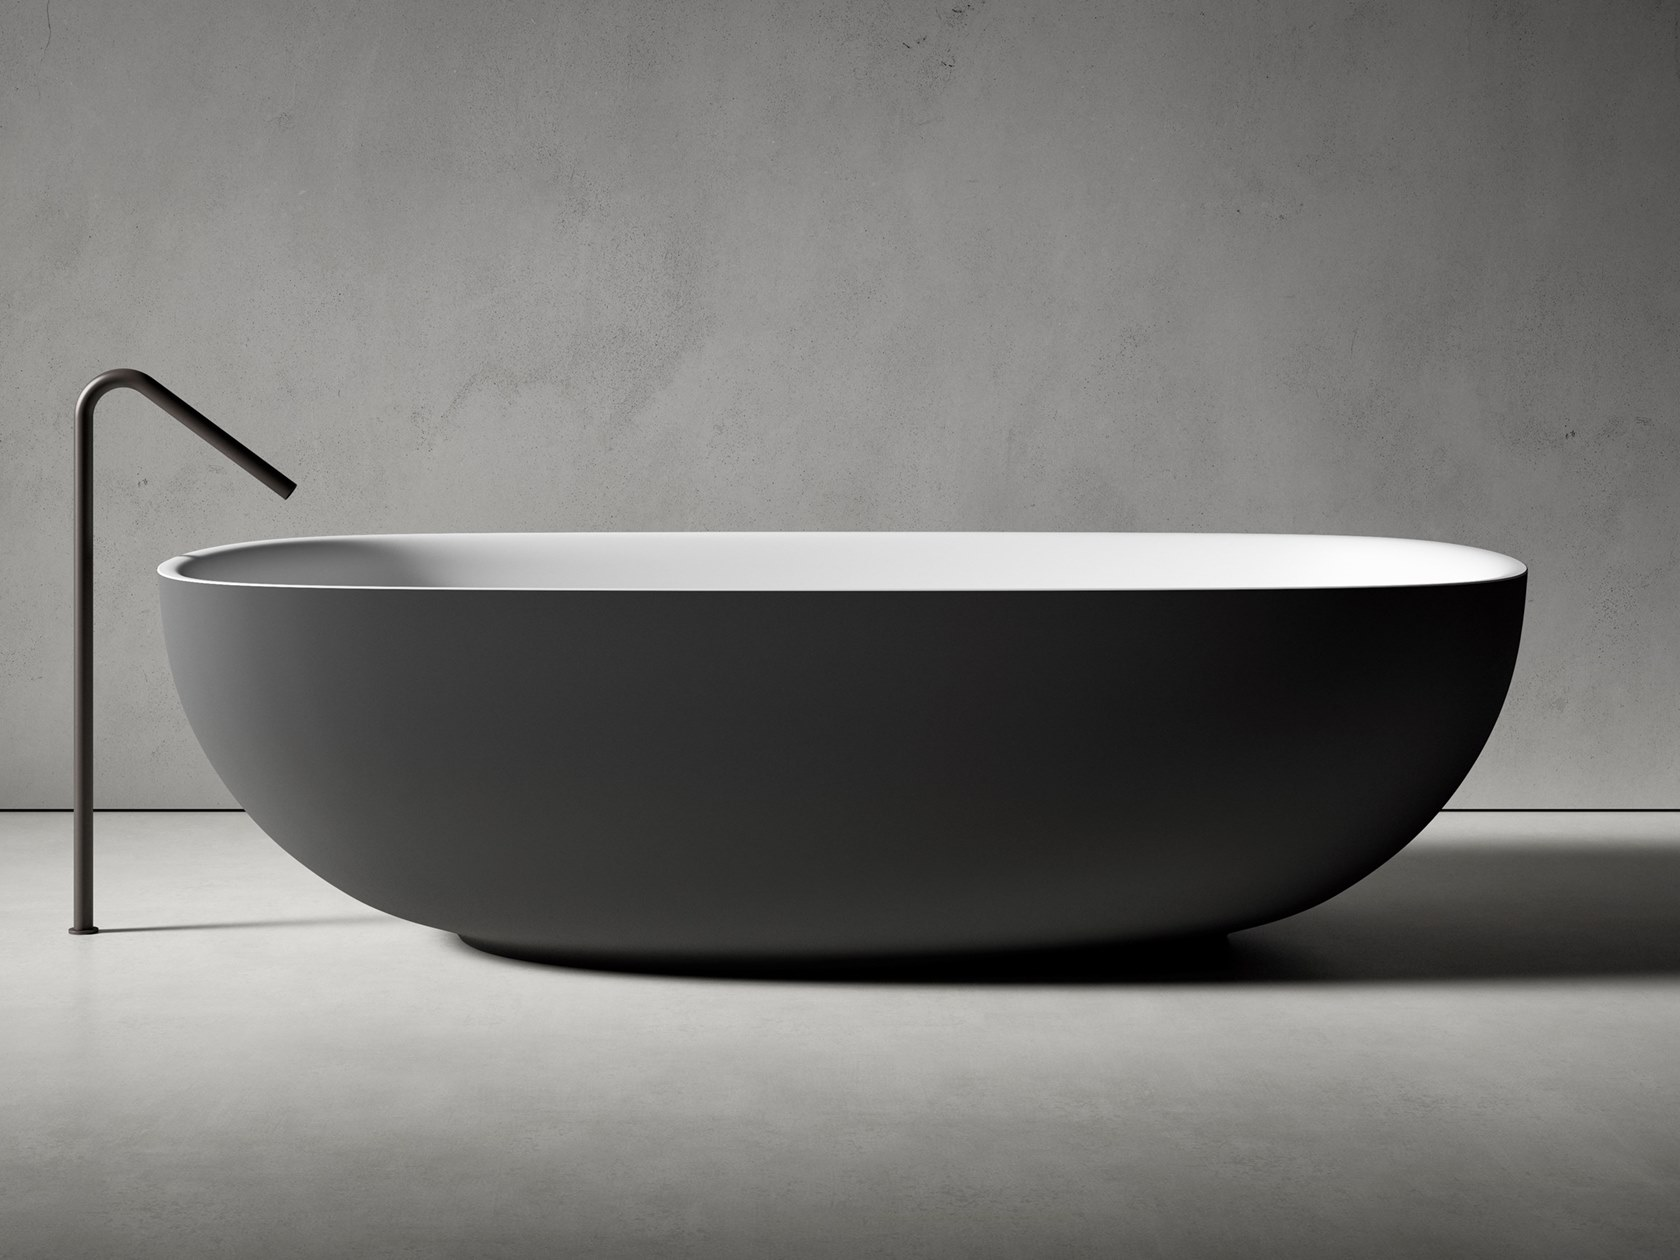 Bathtub with an oval shape and rounded floor-mounted faucet.